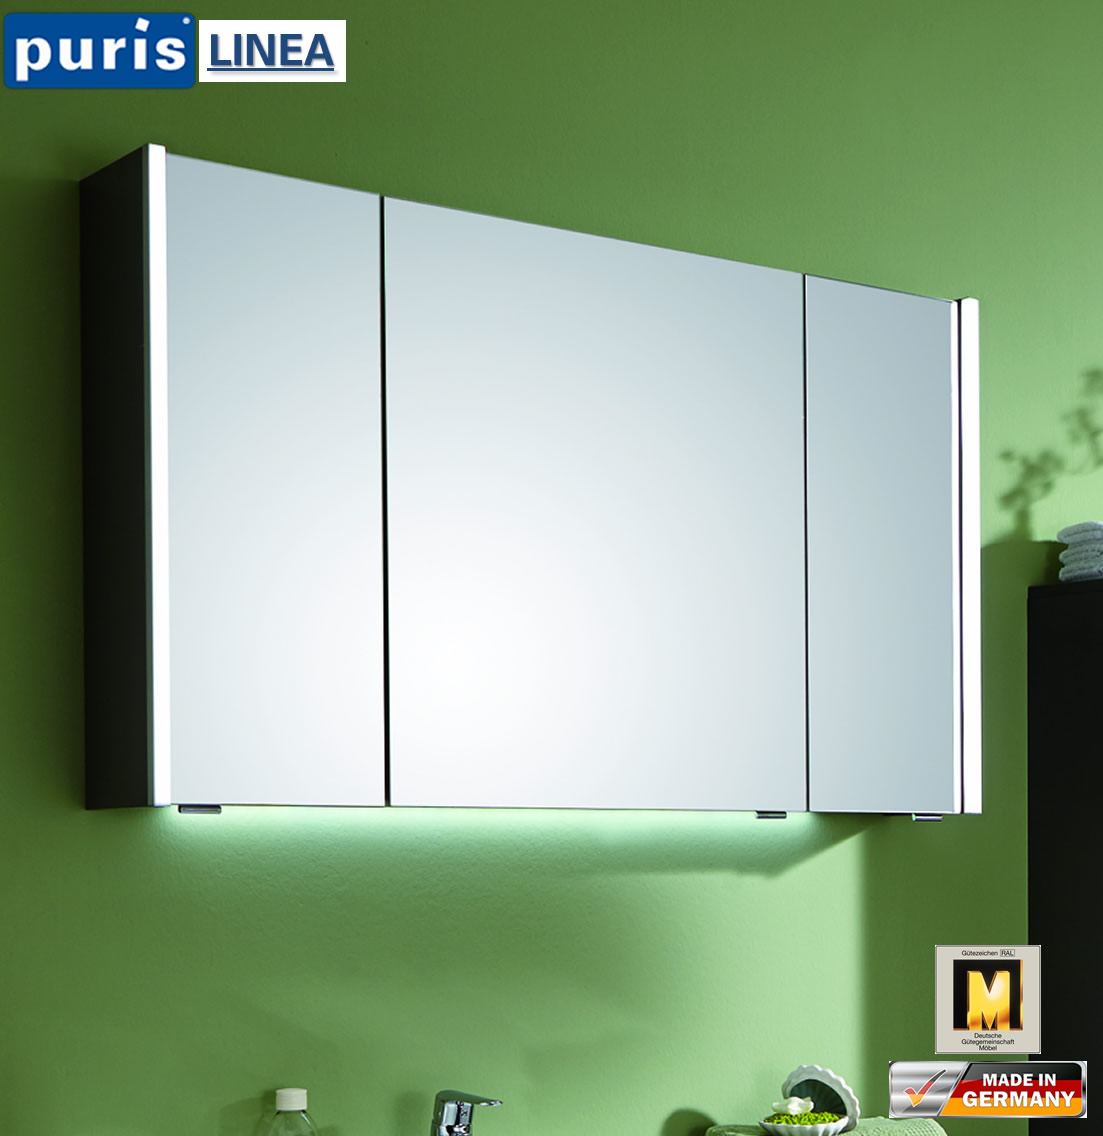 puris linea led spiegelschrank 100 cm s2a431079 impuls. Black Bedroom Furniture Sets. Home Design Ideas